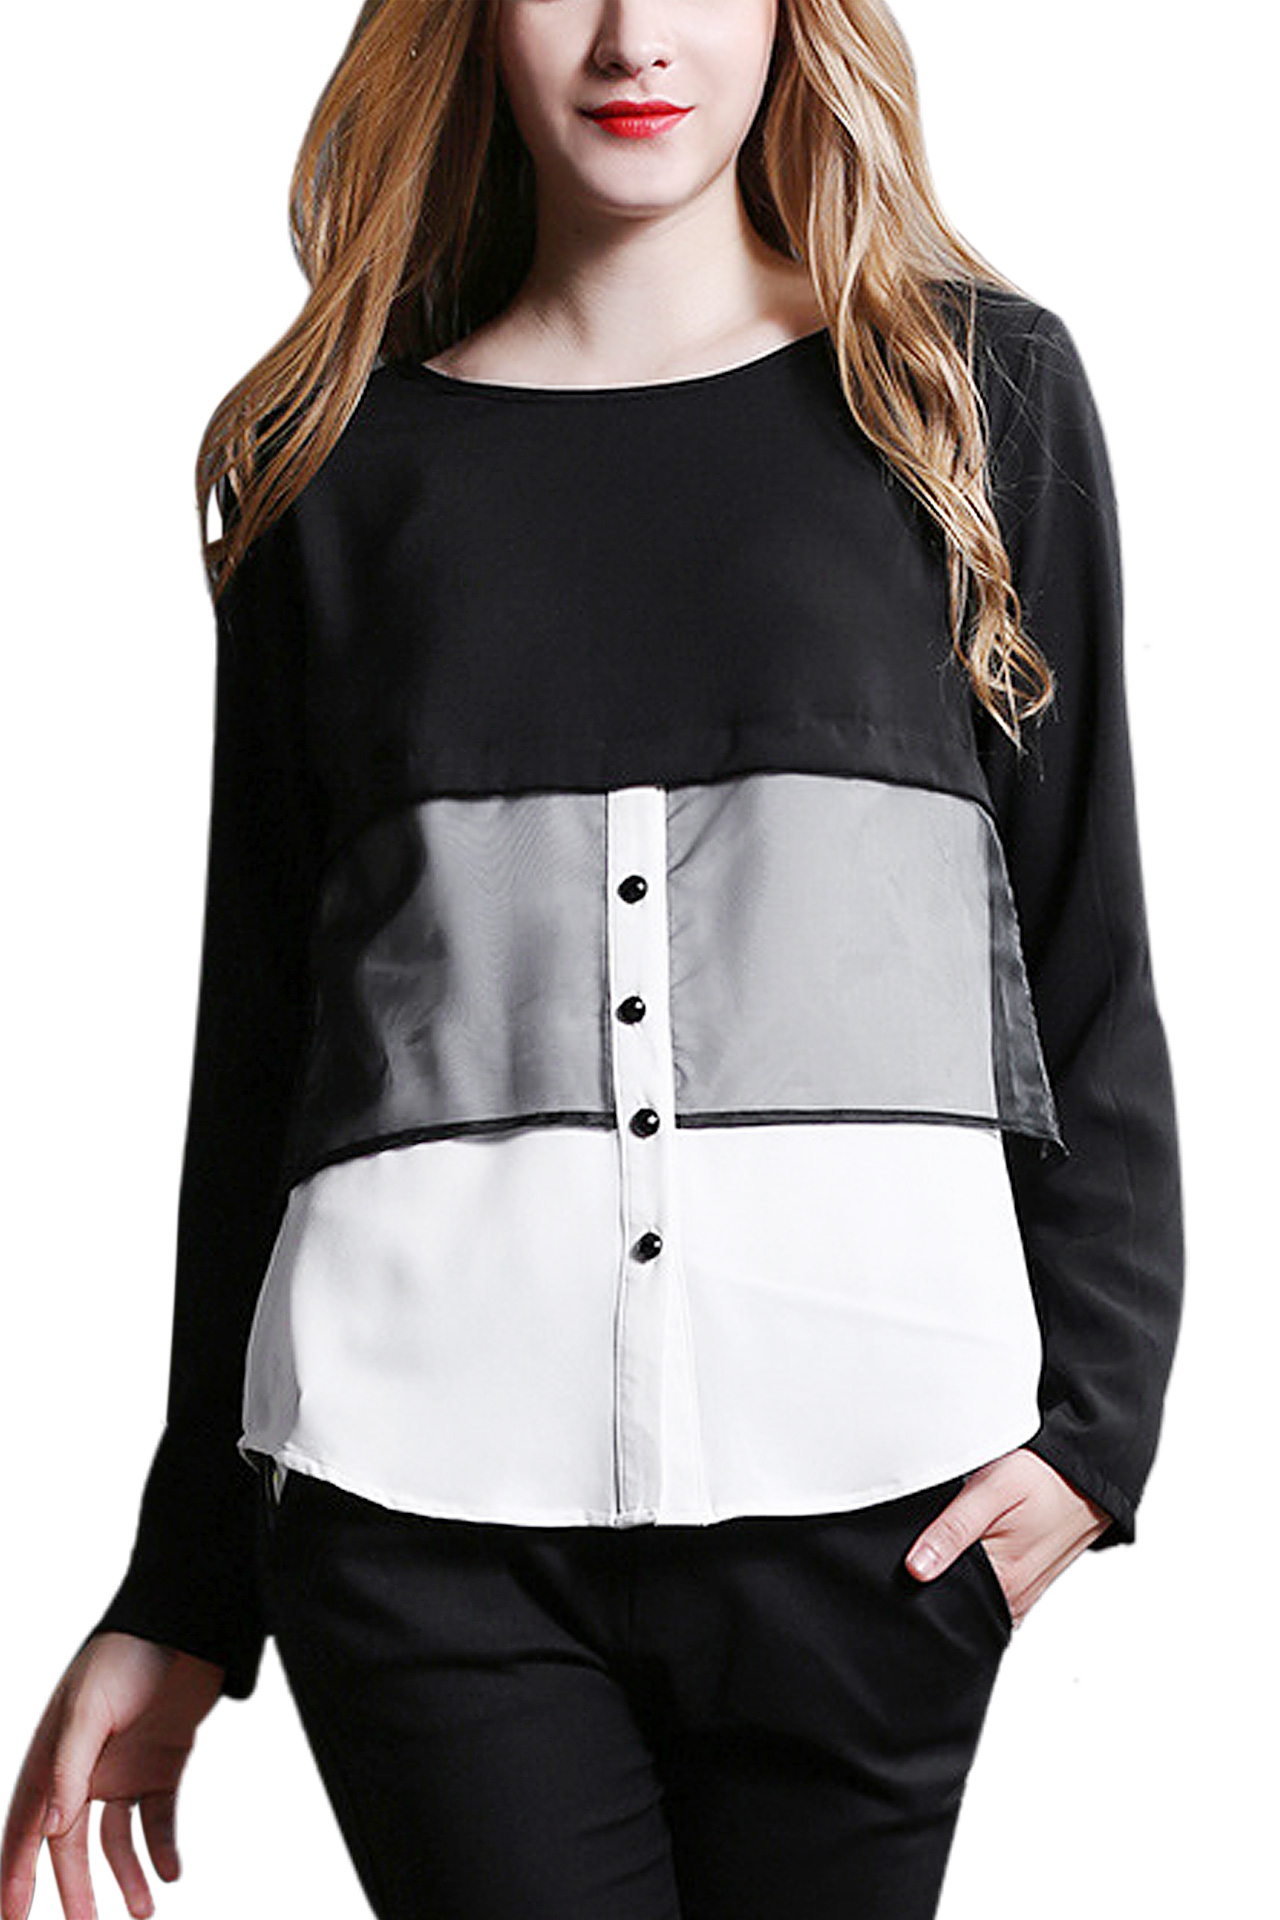 Mesh Stitching Round Collar Shirt with Button Front